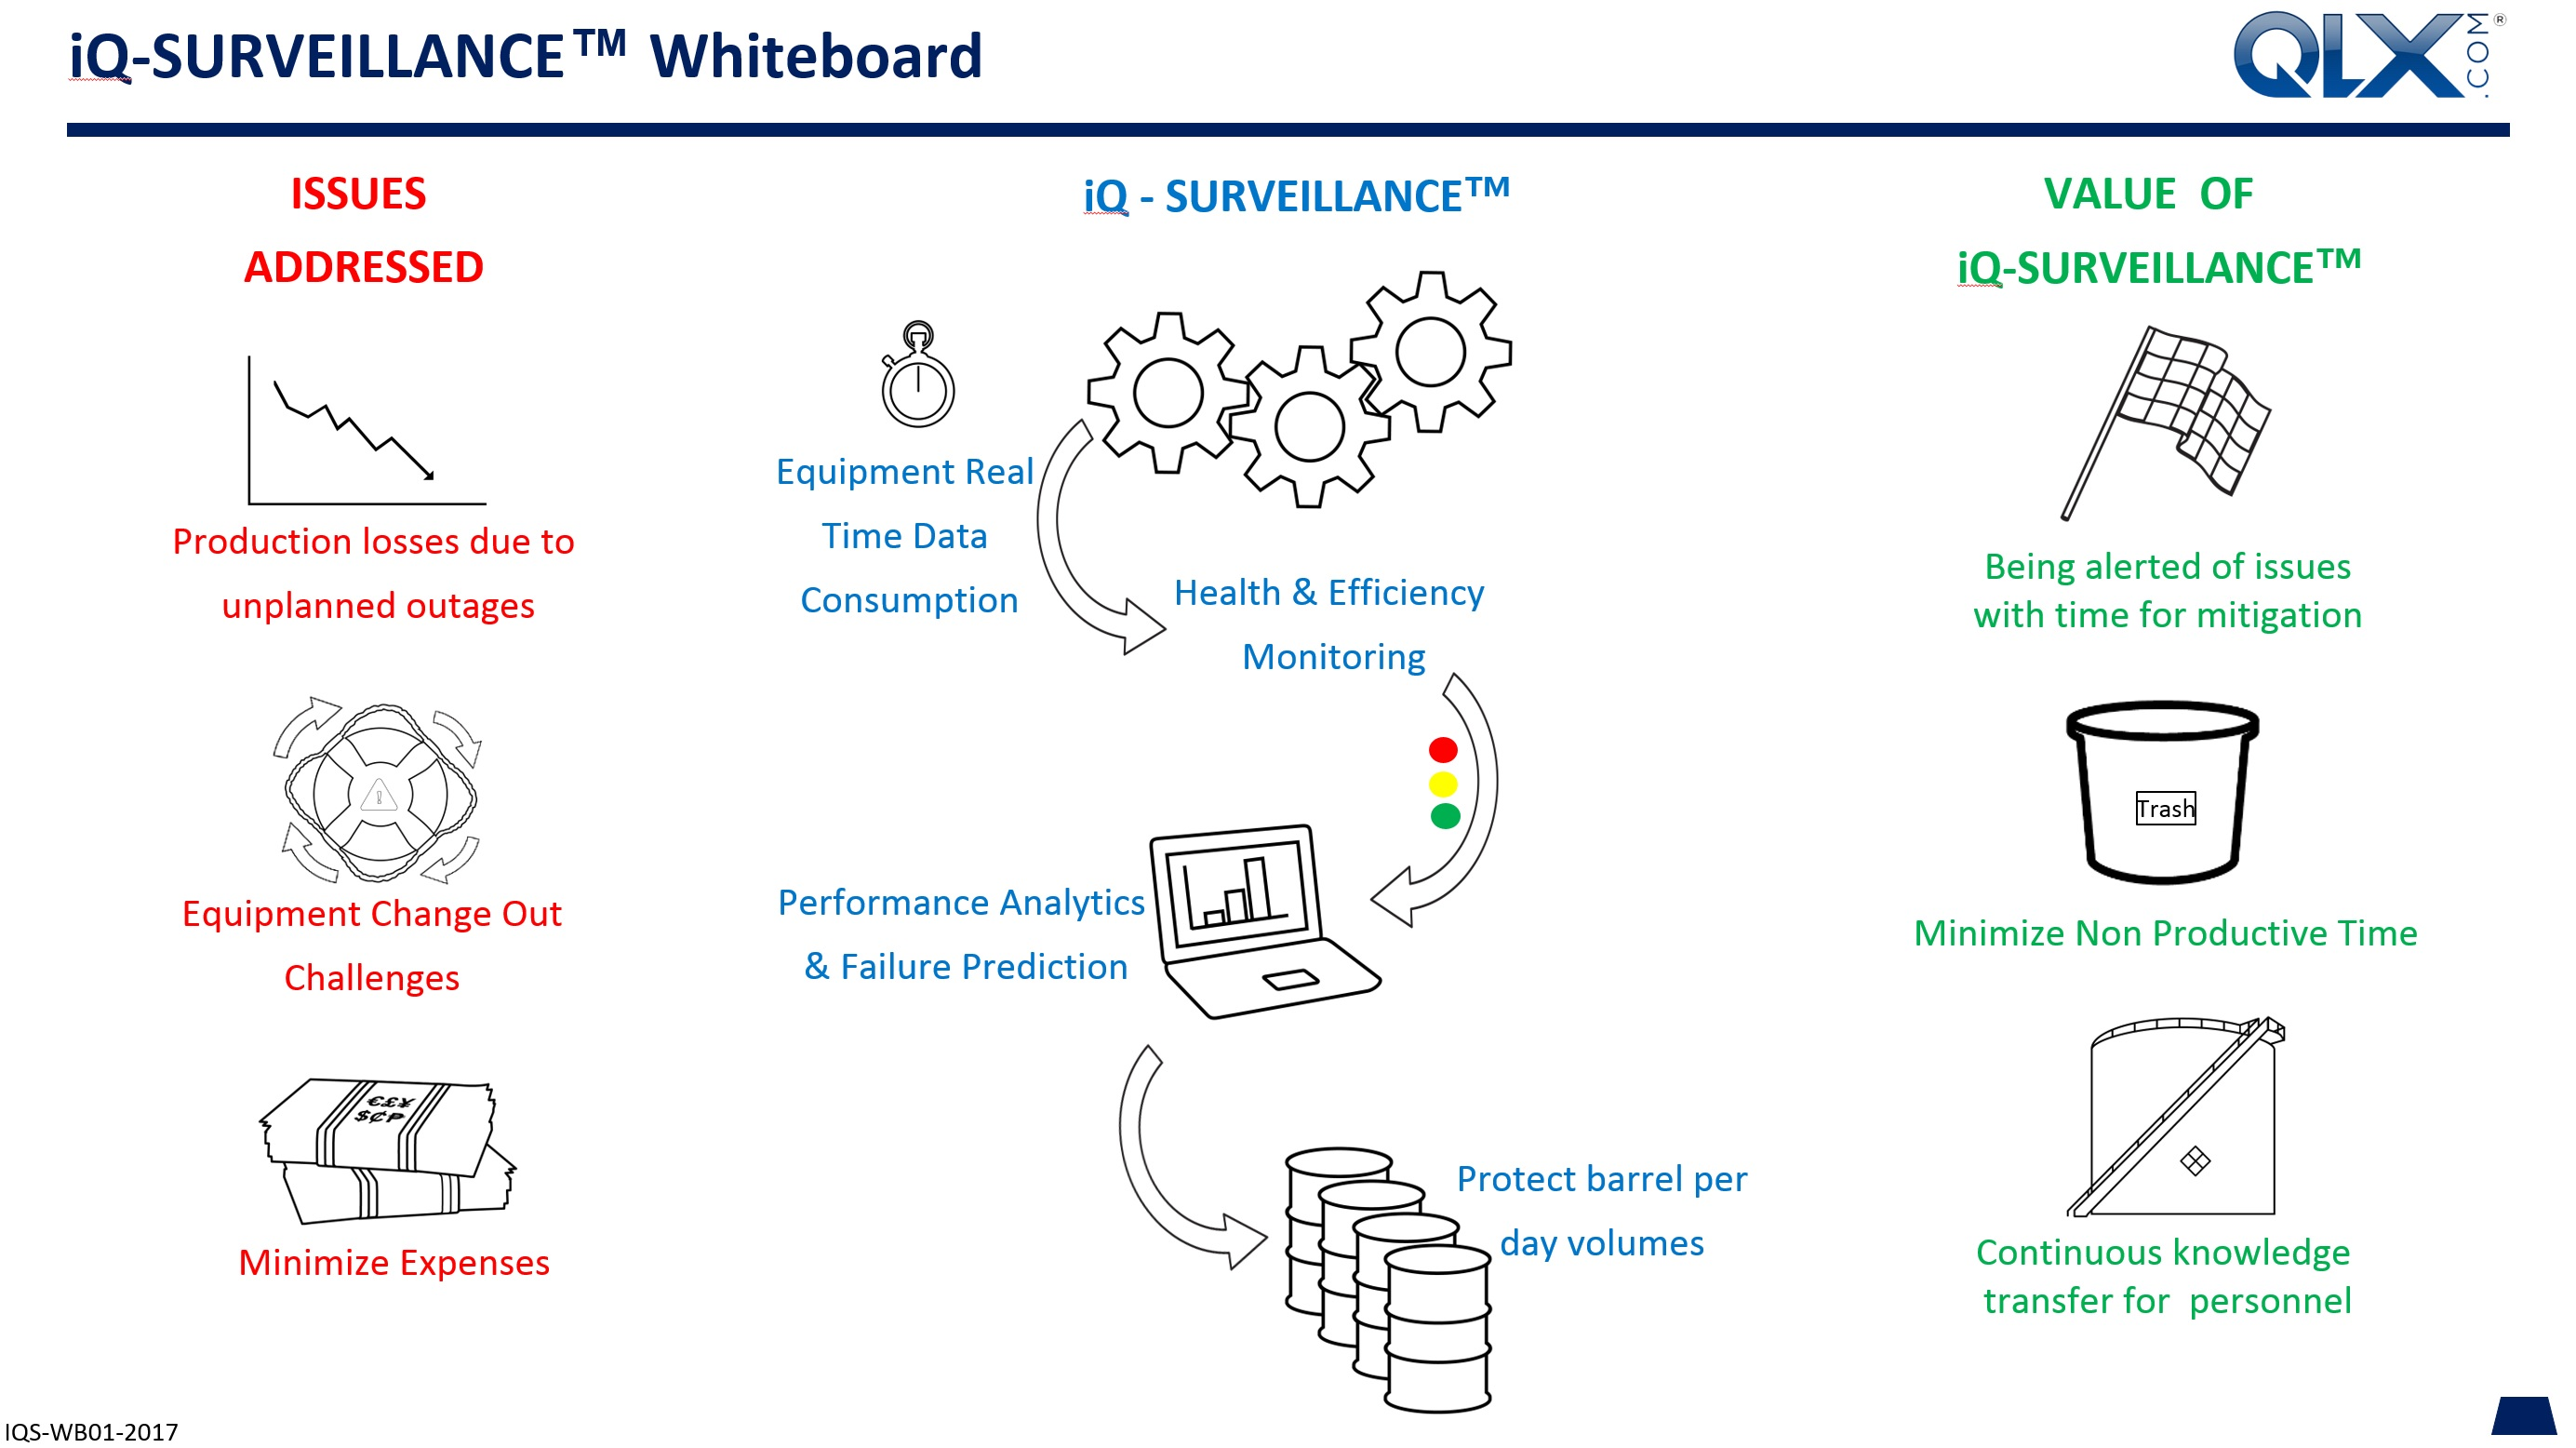 QLX Whiteboard iQ-Surveillance